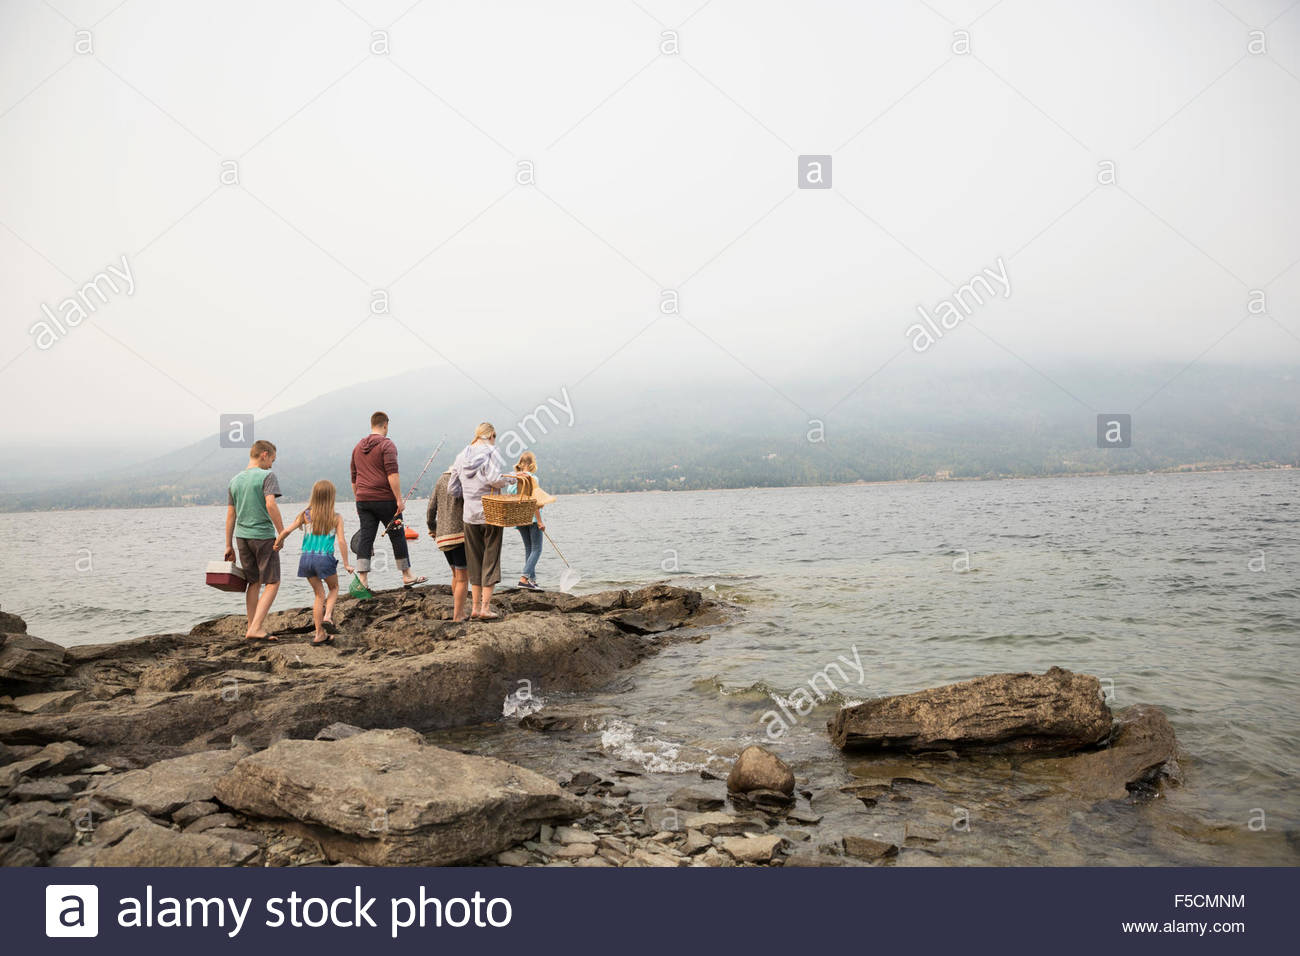 Family with fishing rods tackle box rocks lakeside - Stock Image